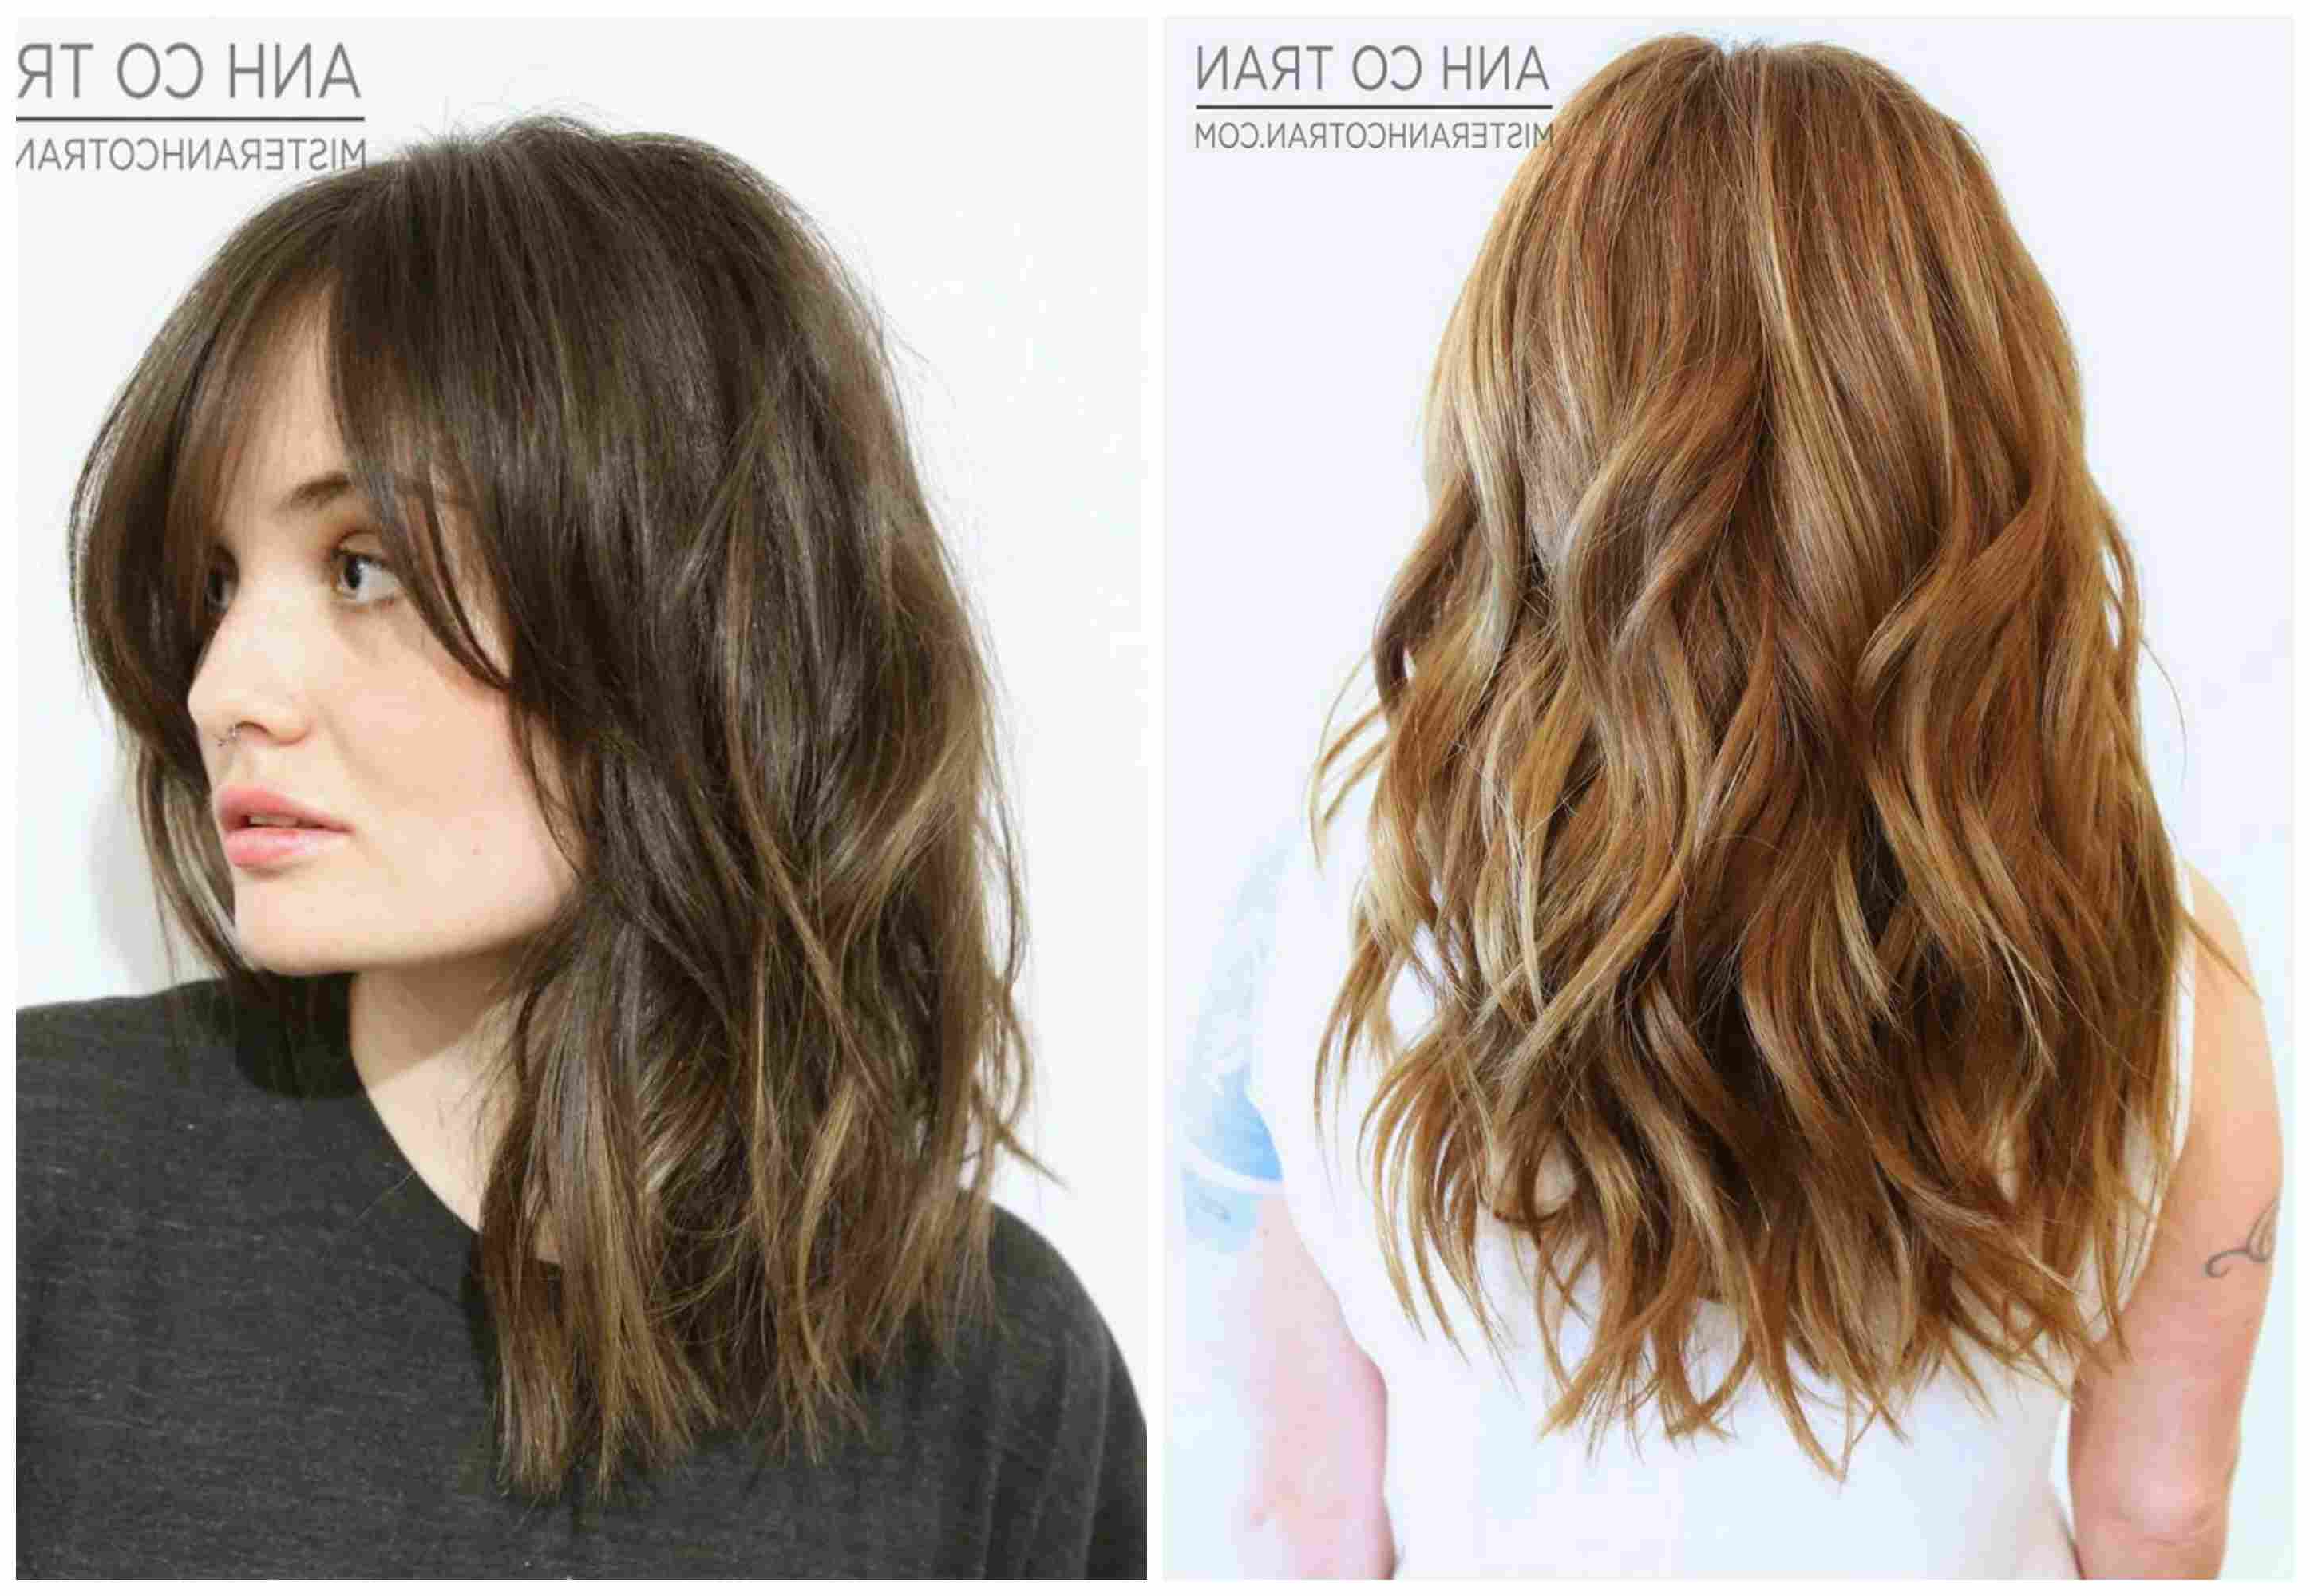 Long Wavy Hair: The Best Cuts, Colors And Styles Inside Most Current Long Wavy Chopped Hairstyles (View 18 of 20)